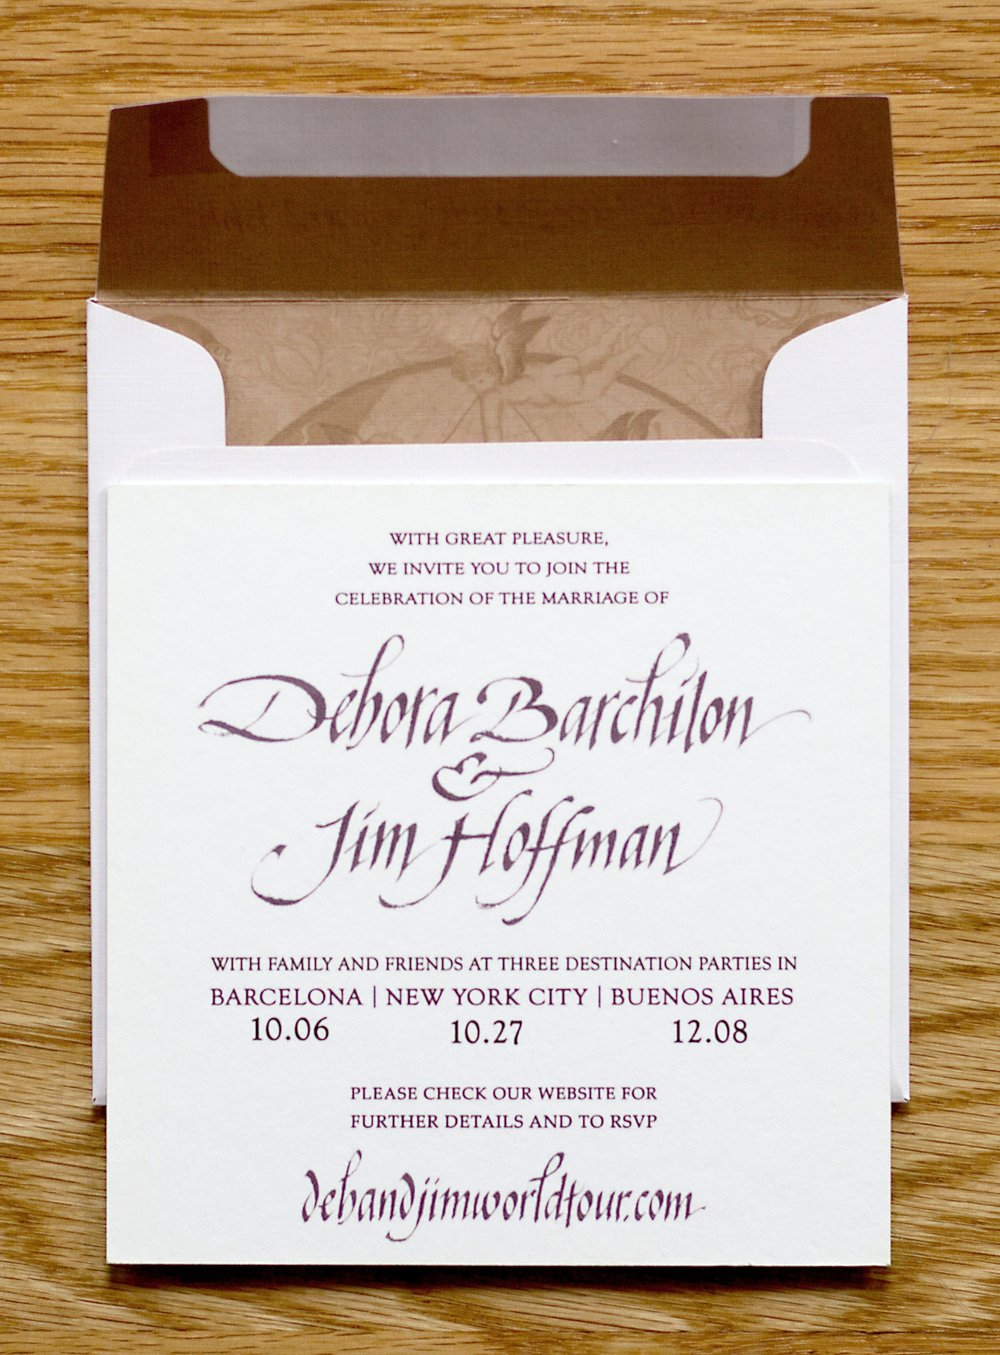 Designed front of invite and and envelope sleeve to highlight their wedding painting.